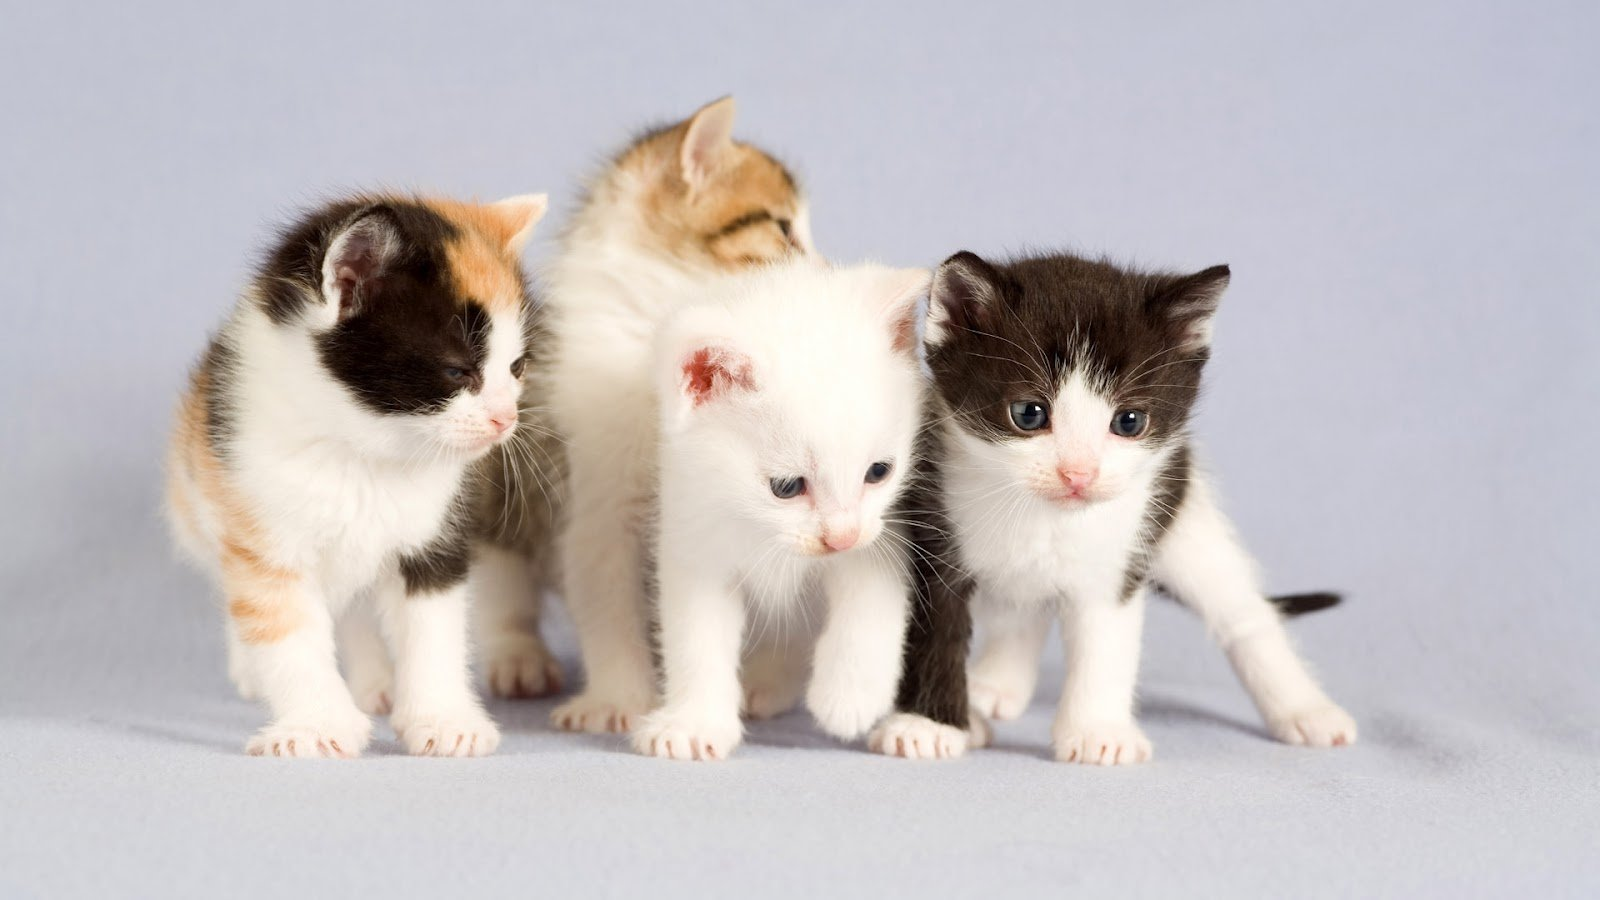 All Wallpapers Beautiful Cats Hd Wallpapers 1600x900